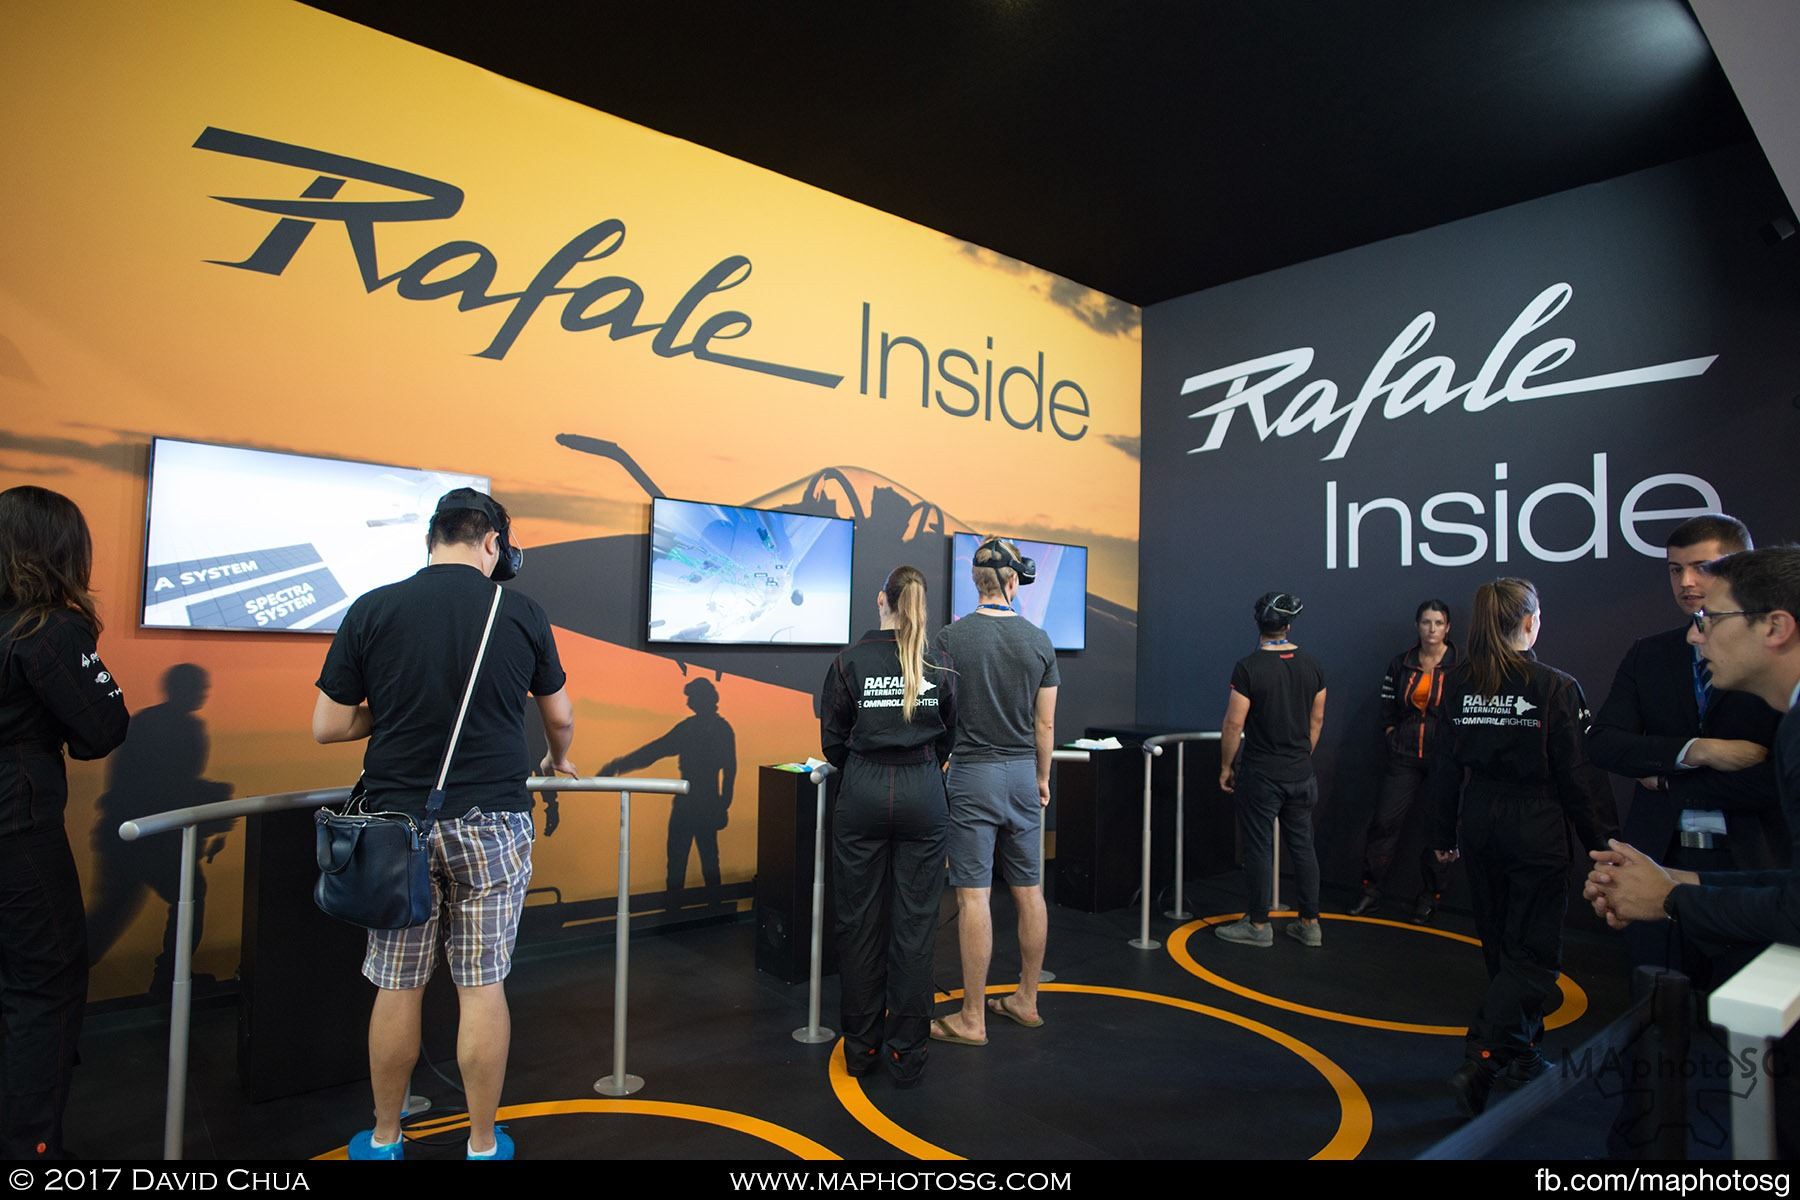 10. Virtual Reality was a big this year. Many exhibitors brought along VR solutions. Here, visitors to the Dassault Aviation booth were able to fly a Rafale fighter through their Immersive Dassault Aviation application.